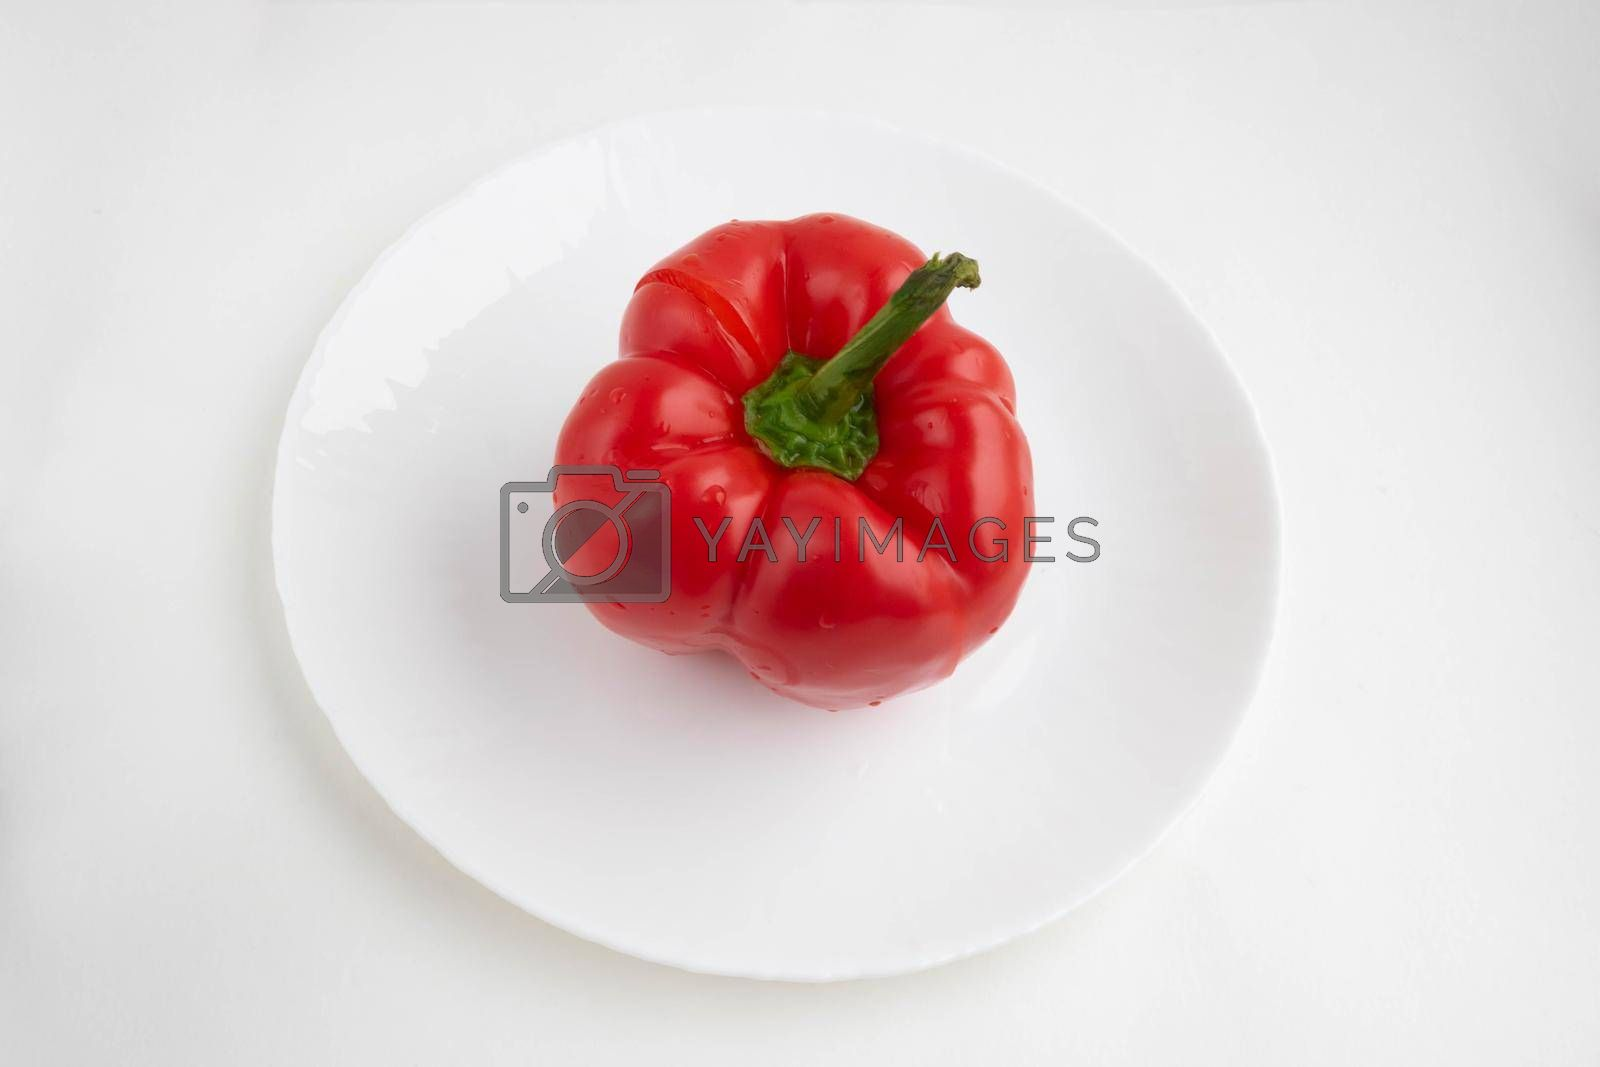 Red pepper on a white plate, isolated on a white background.